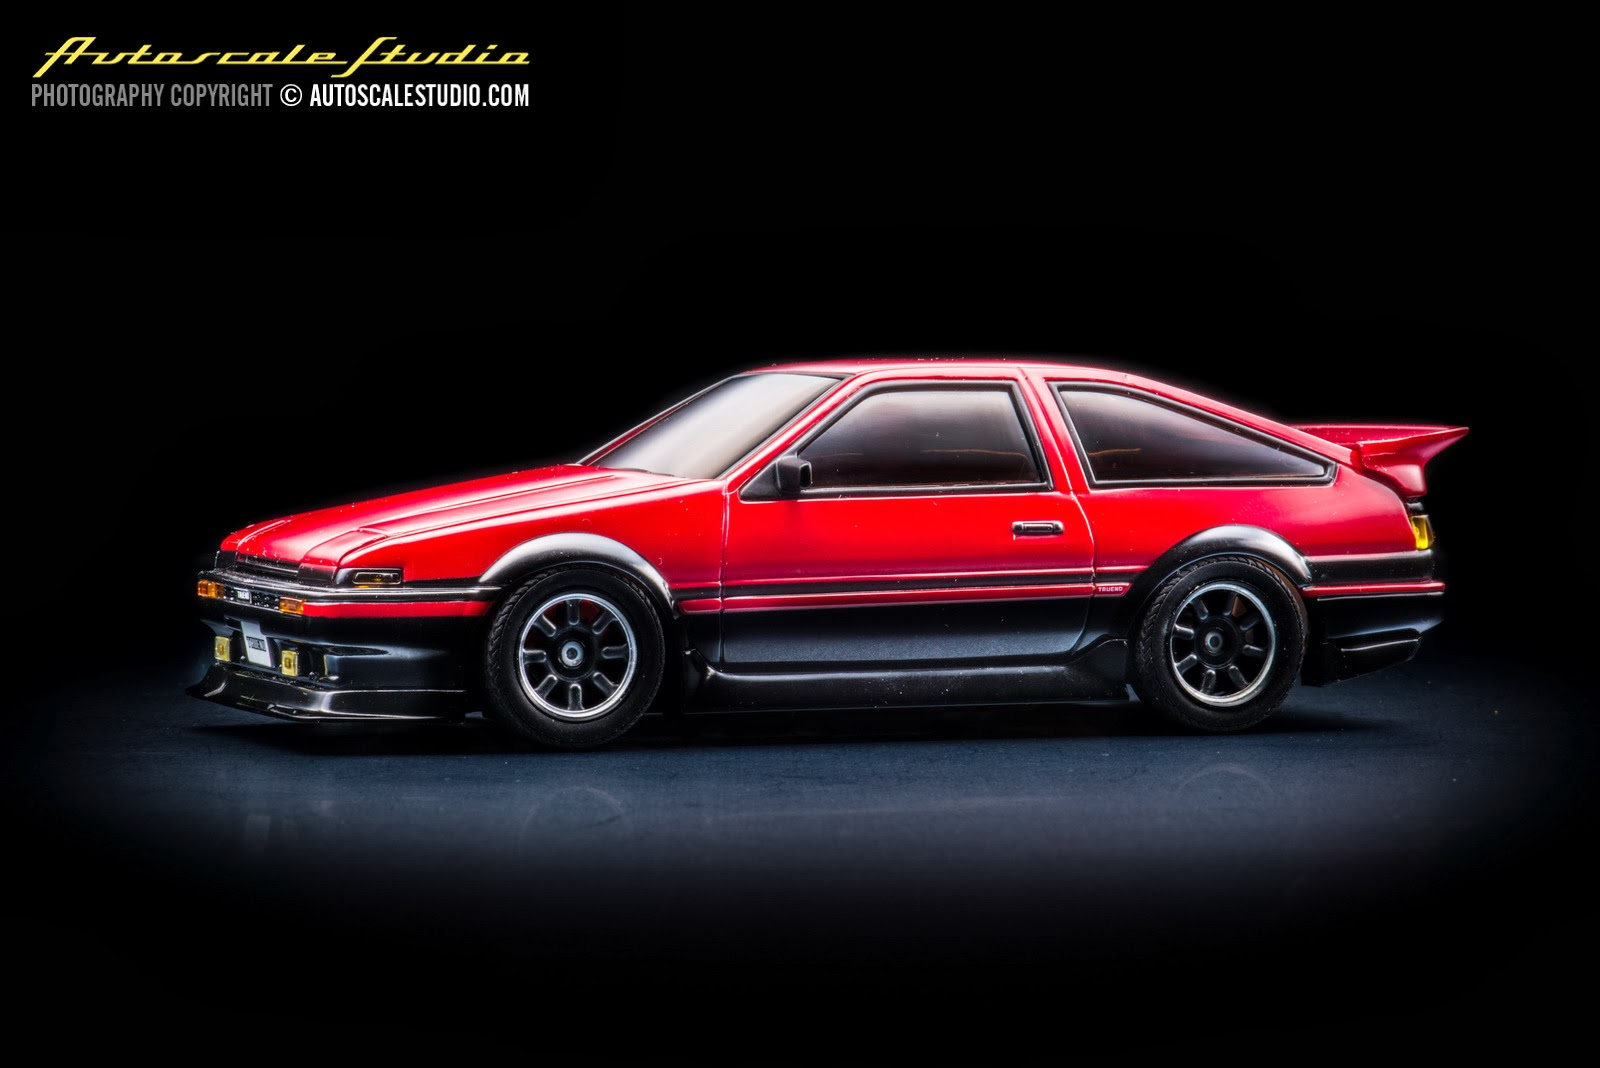 mzp410bkr toyota sprinter trueno ae86 aero version red. Black Bedroom Furniture Sets. Home Design Ideas